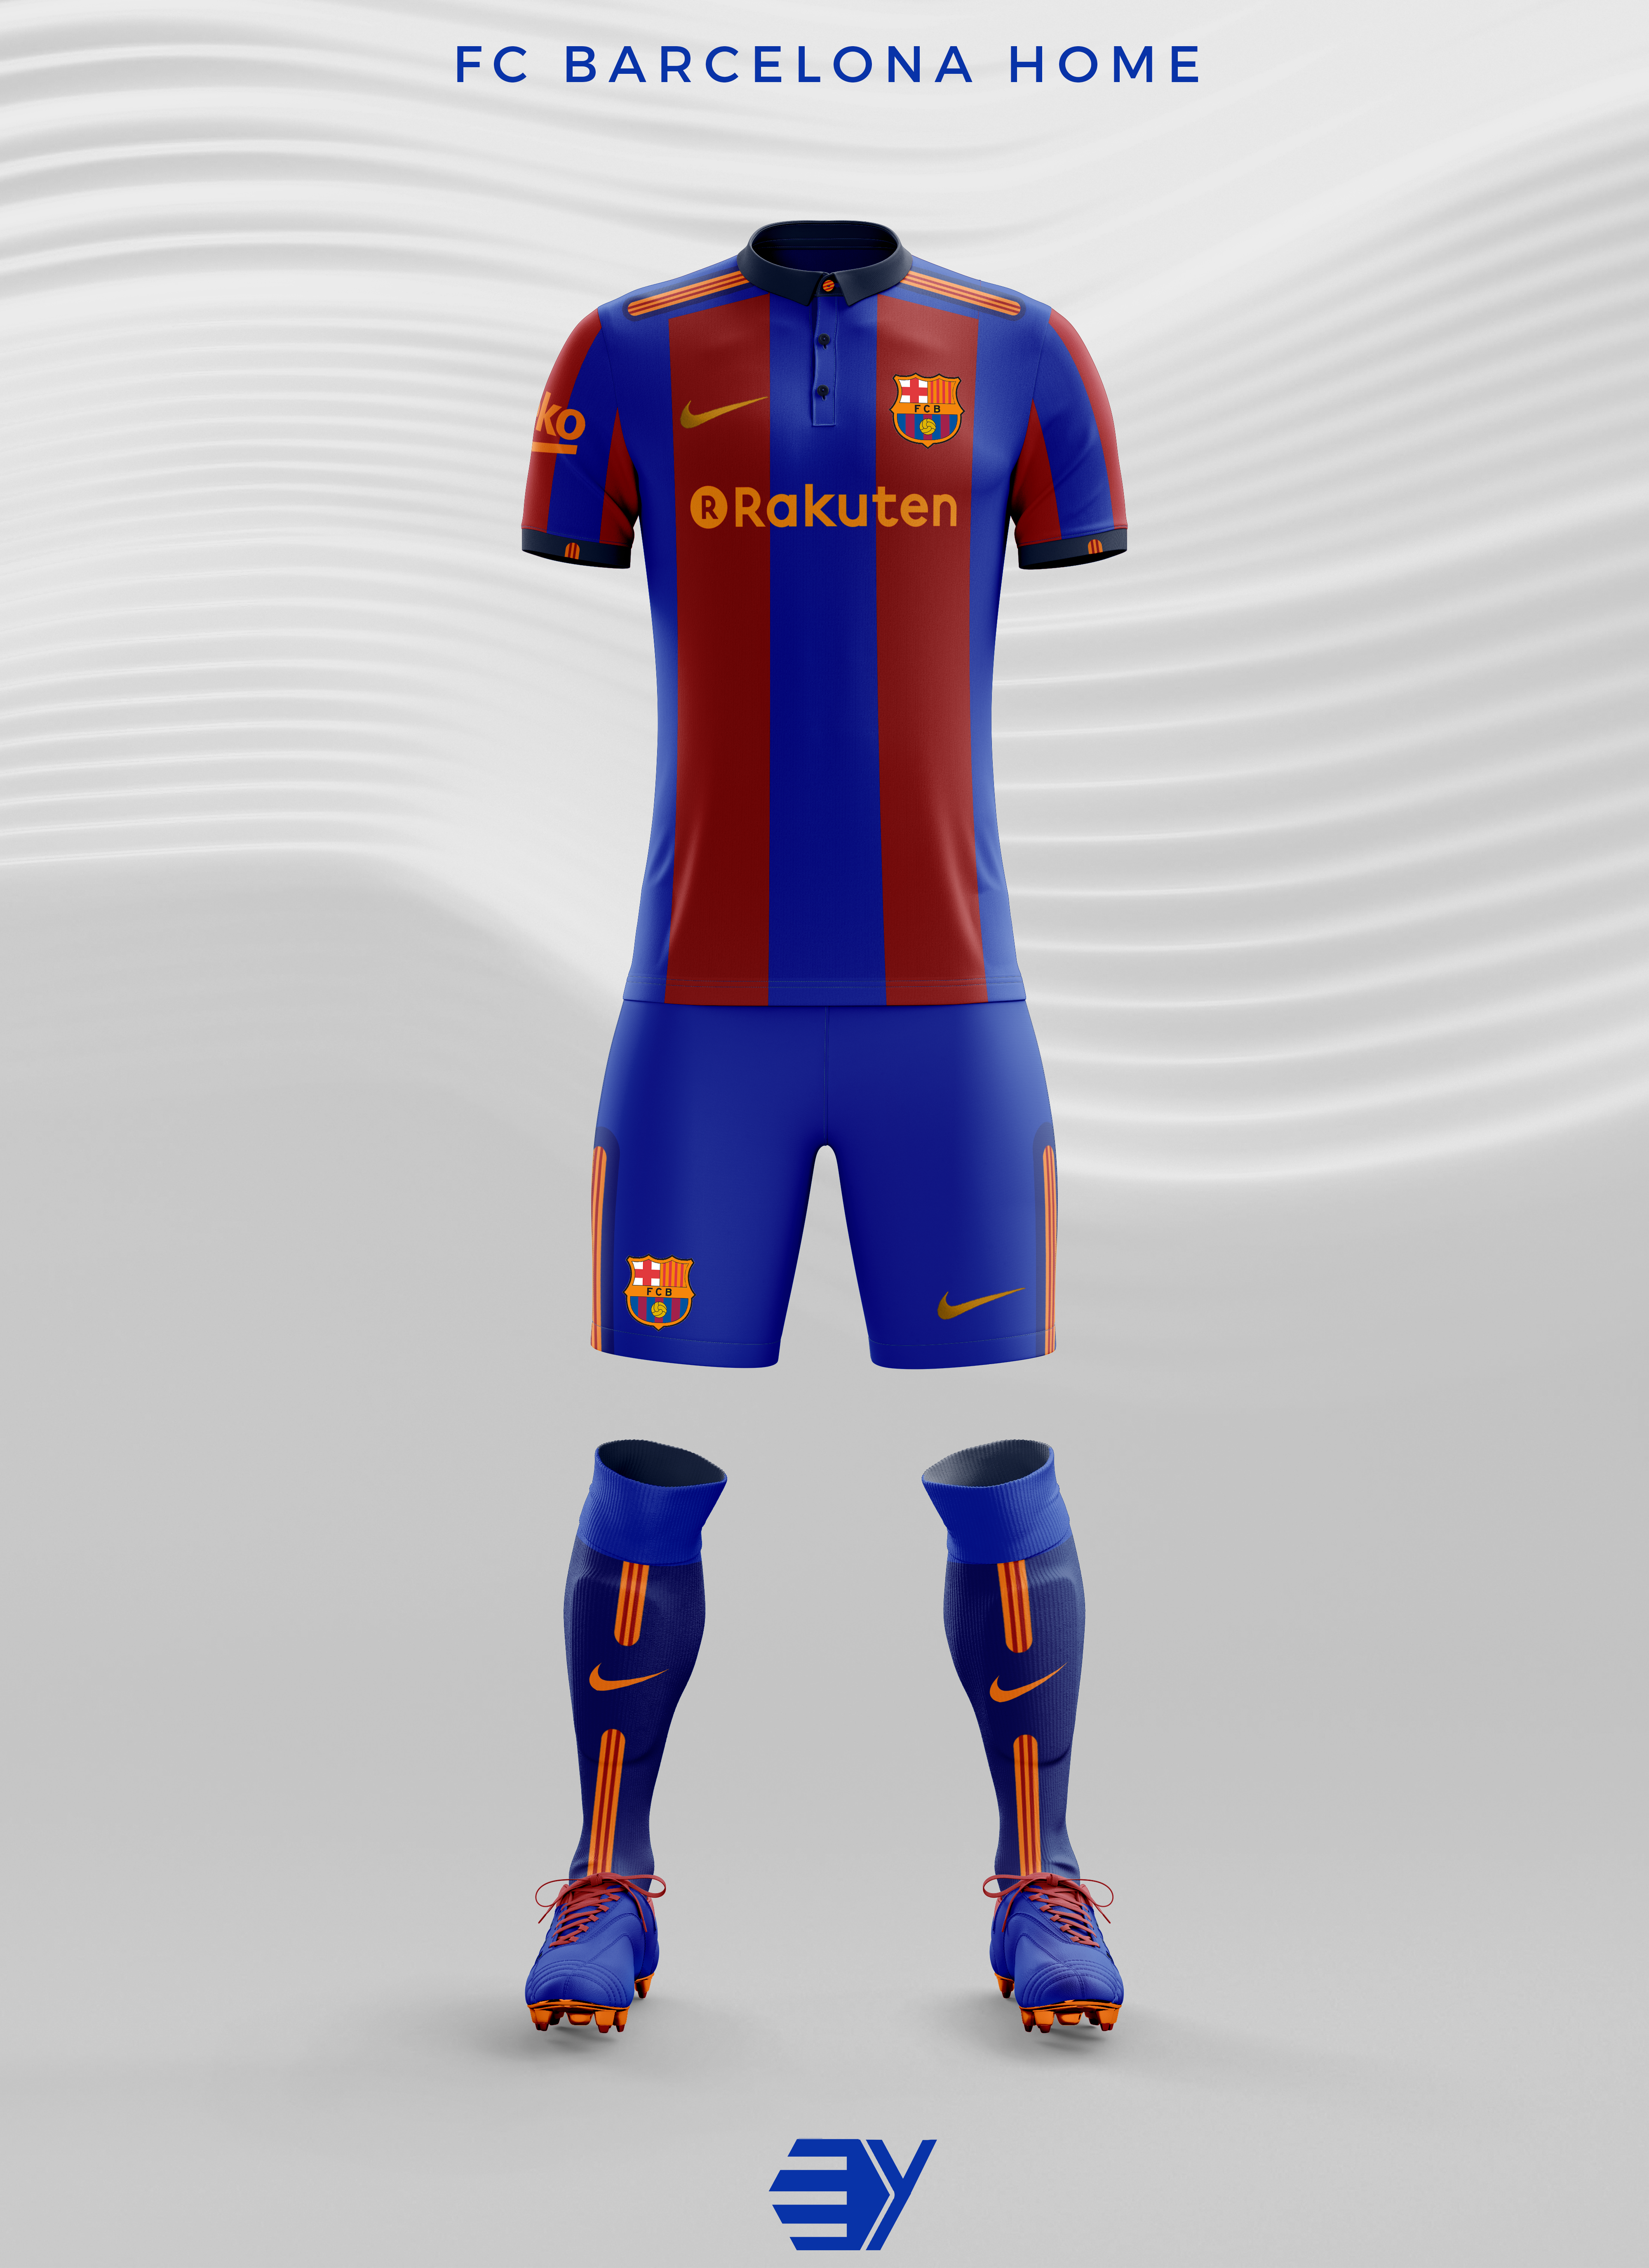 http://orig08.deviantart.net/02da/f/2016/363/f/d/fc_barcelona_home_by_frozengrafik-data9nz.png